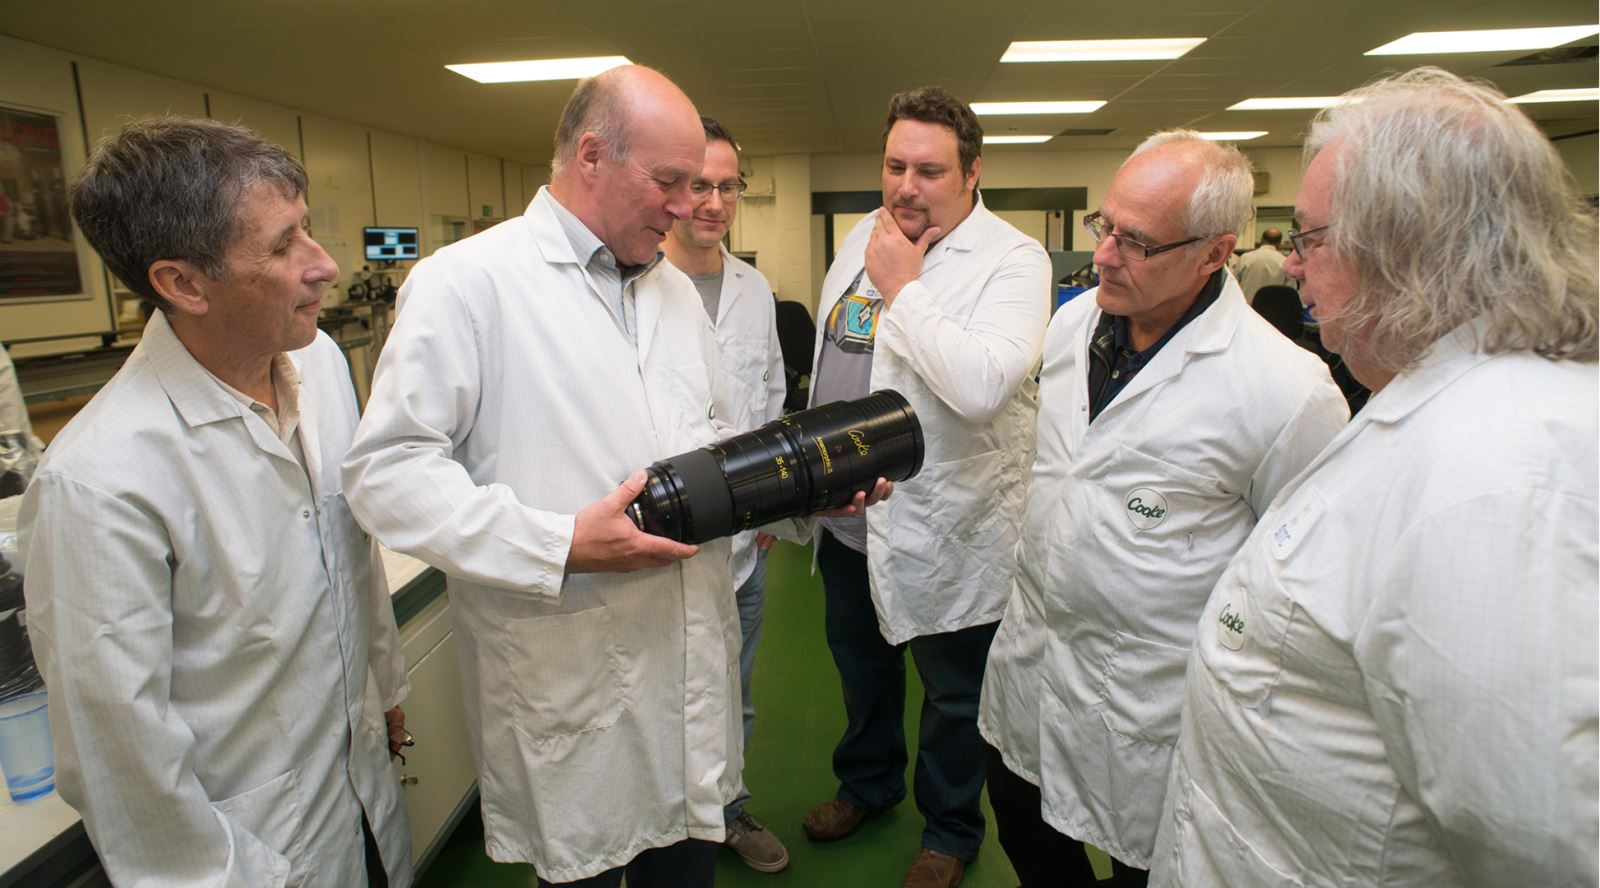 GTC members admiring a Cooke Optics lens on the recent tour of the Cooke factory in Leicester